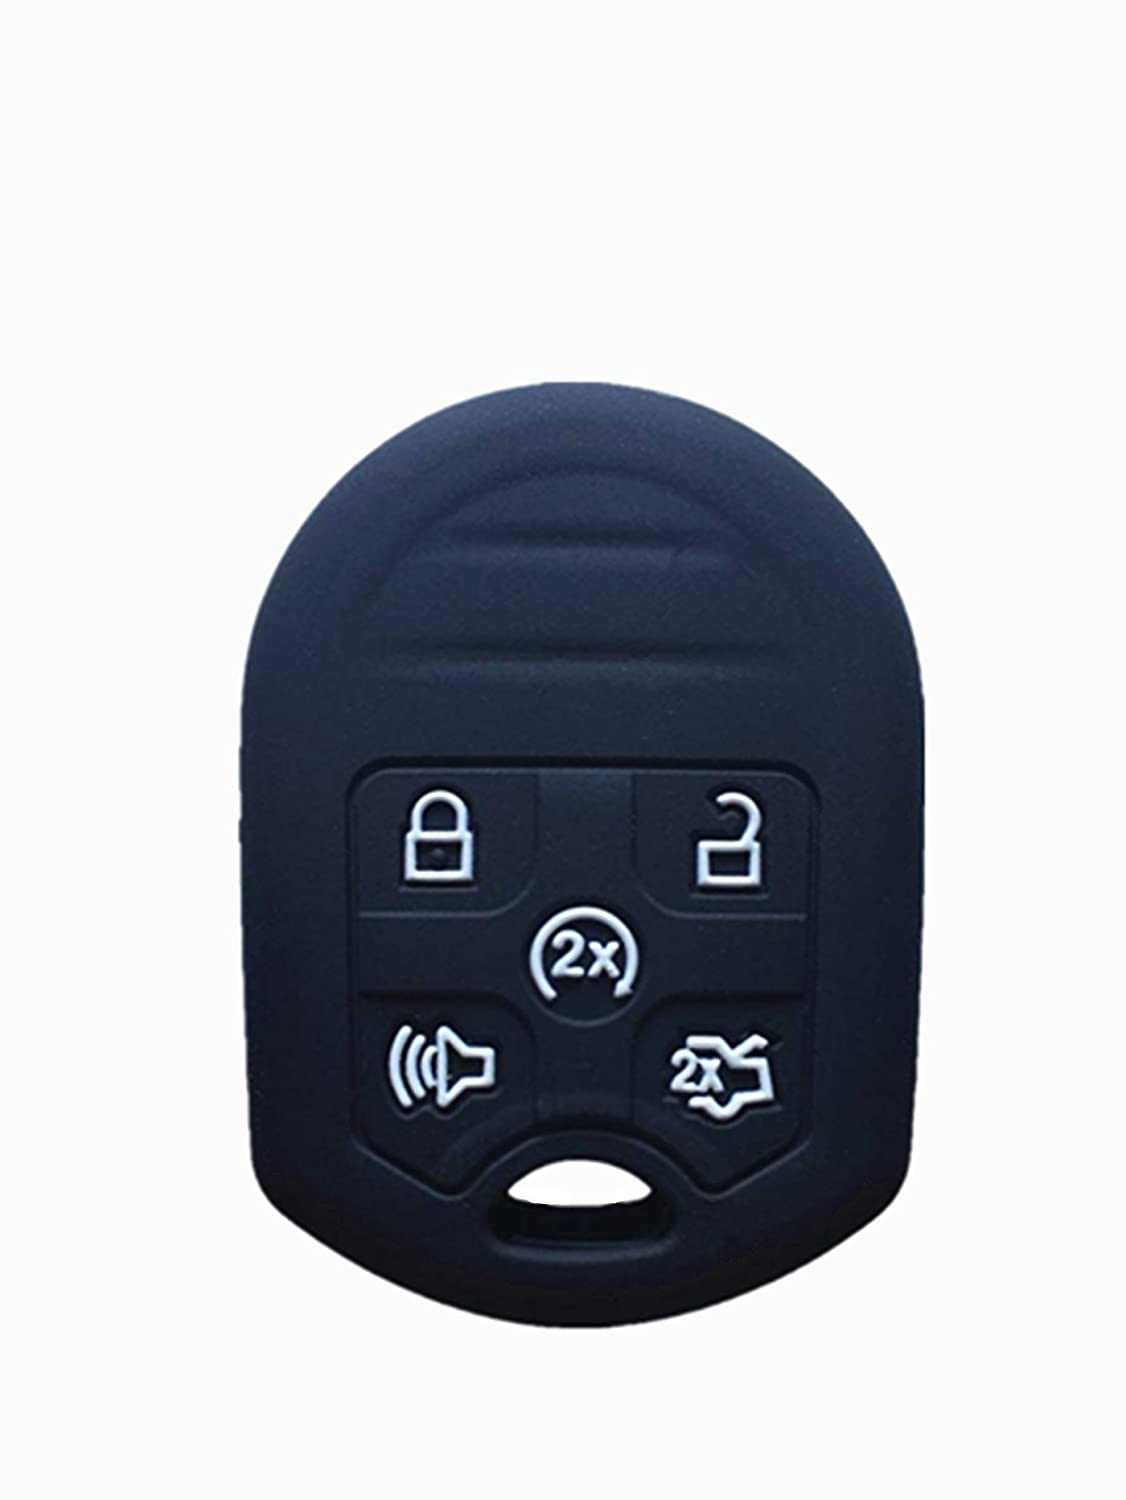 KAWIHEN Silicone Keyless Entry Case Cover Smart Remote Key Fob Cover Protector For Ford Edge Expedition Explorer Flex Focus Fusion Mustang Taurus 164-R8000 CWTWB1U793